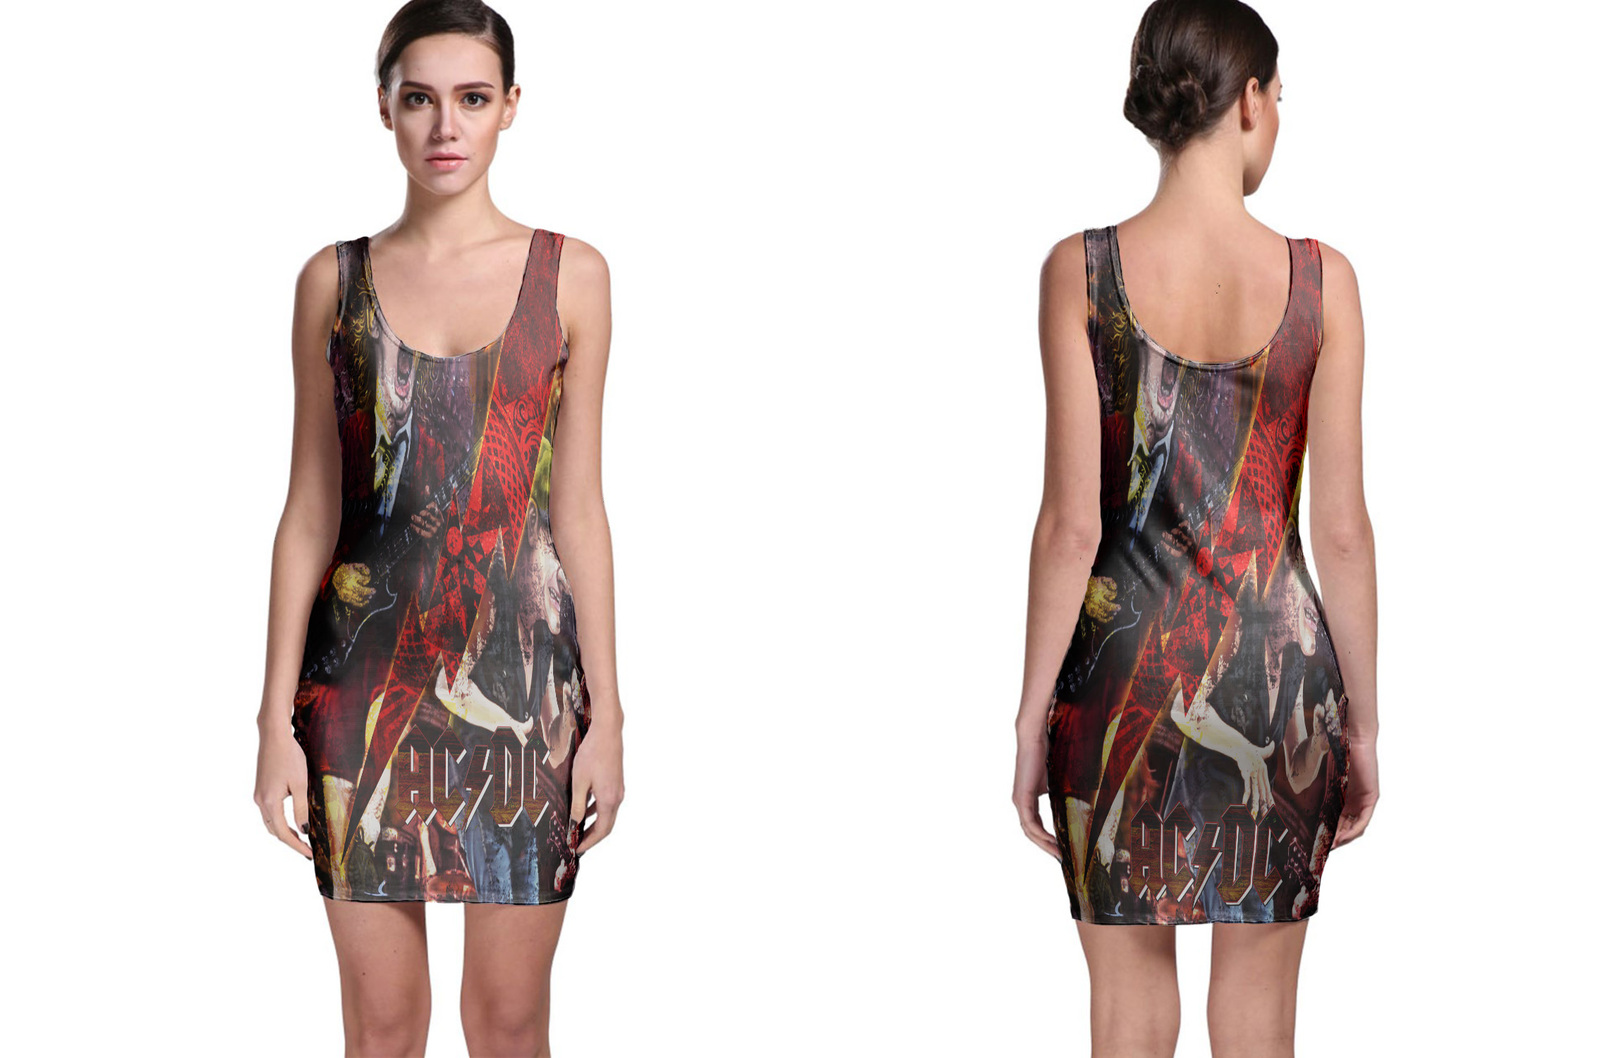 ACDC Collection #1 Women's Sleevless Bodycon Dress - $21.80 - $27.80